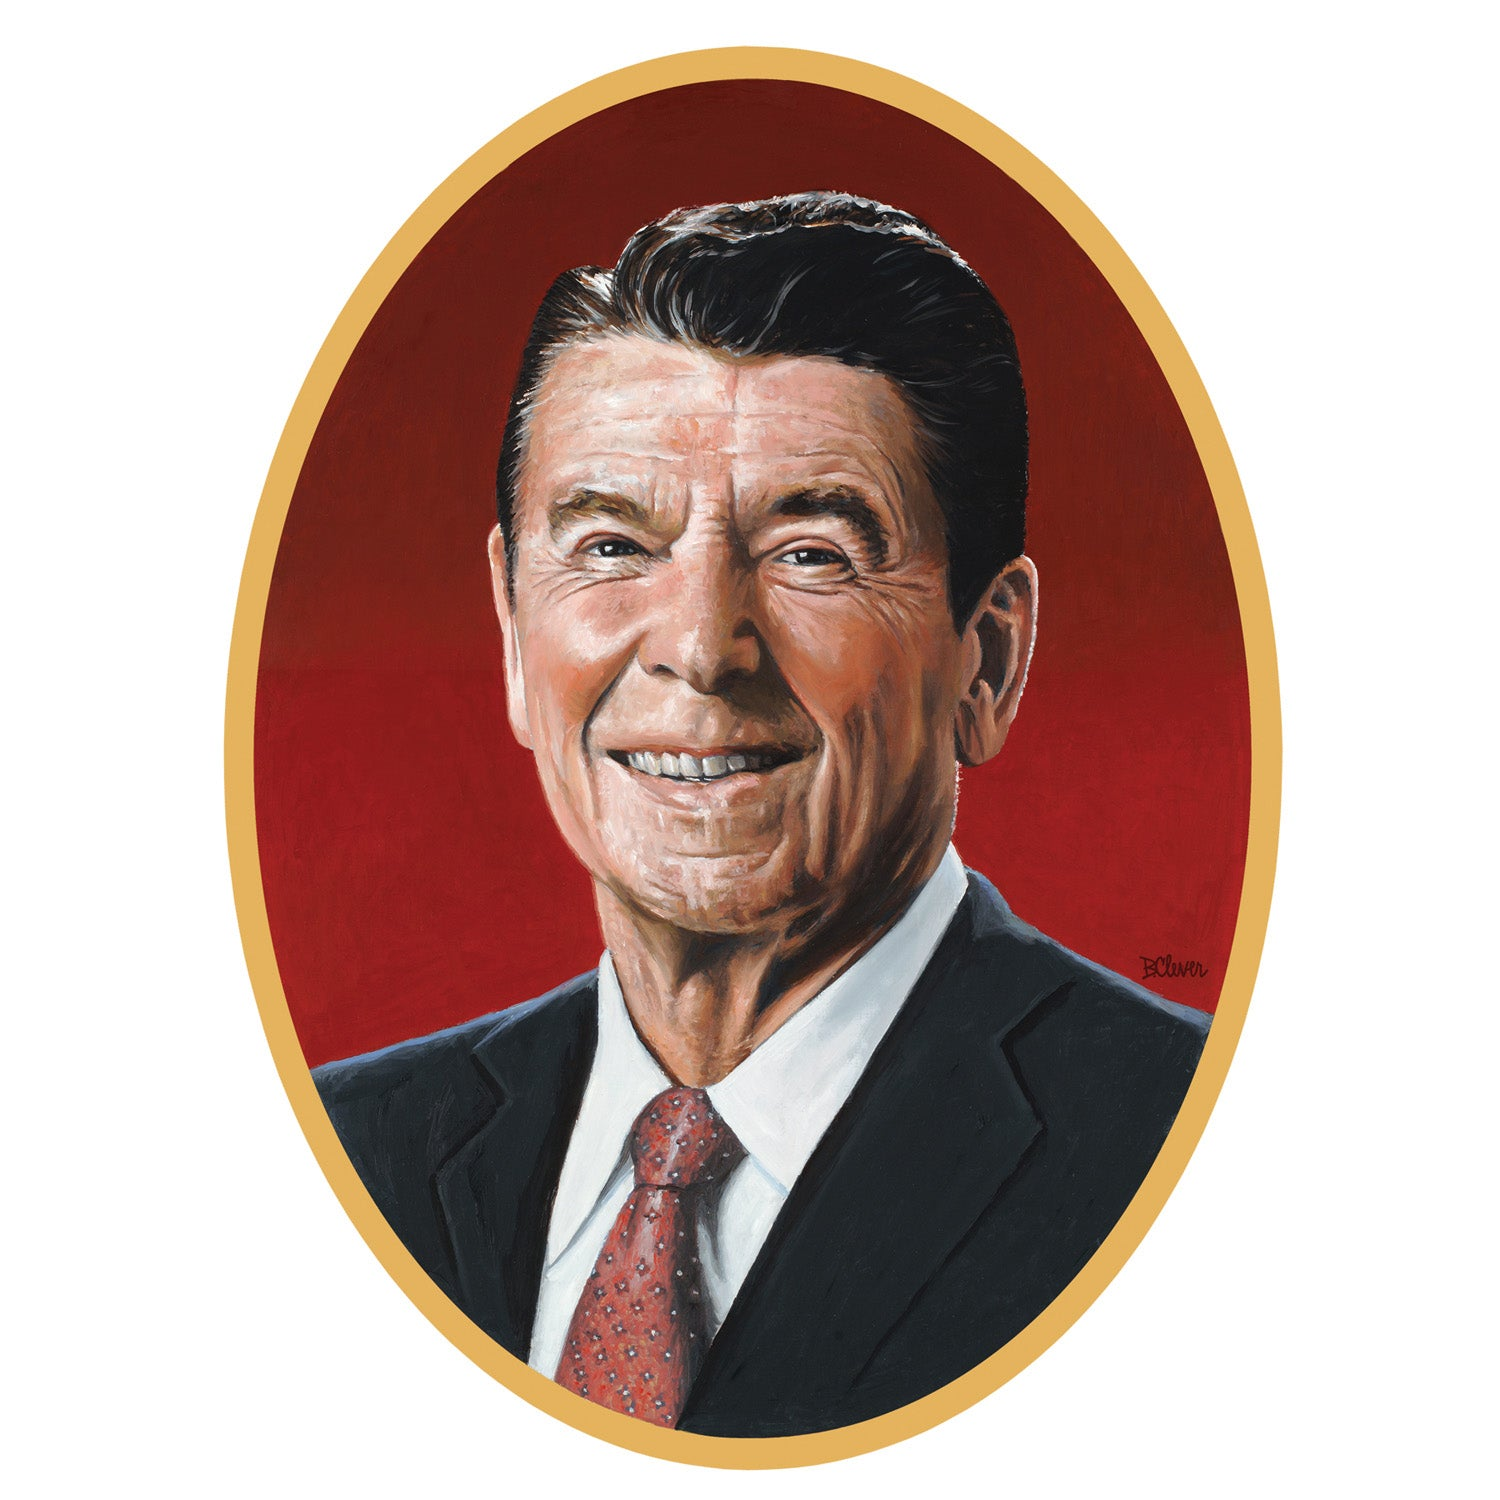 Reagan Cutout by Beistle - School Awards and Supplies Decorations